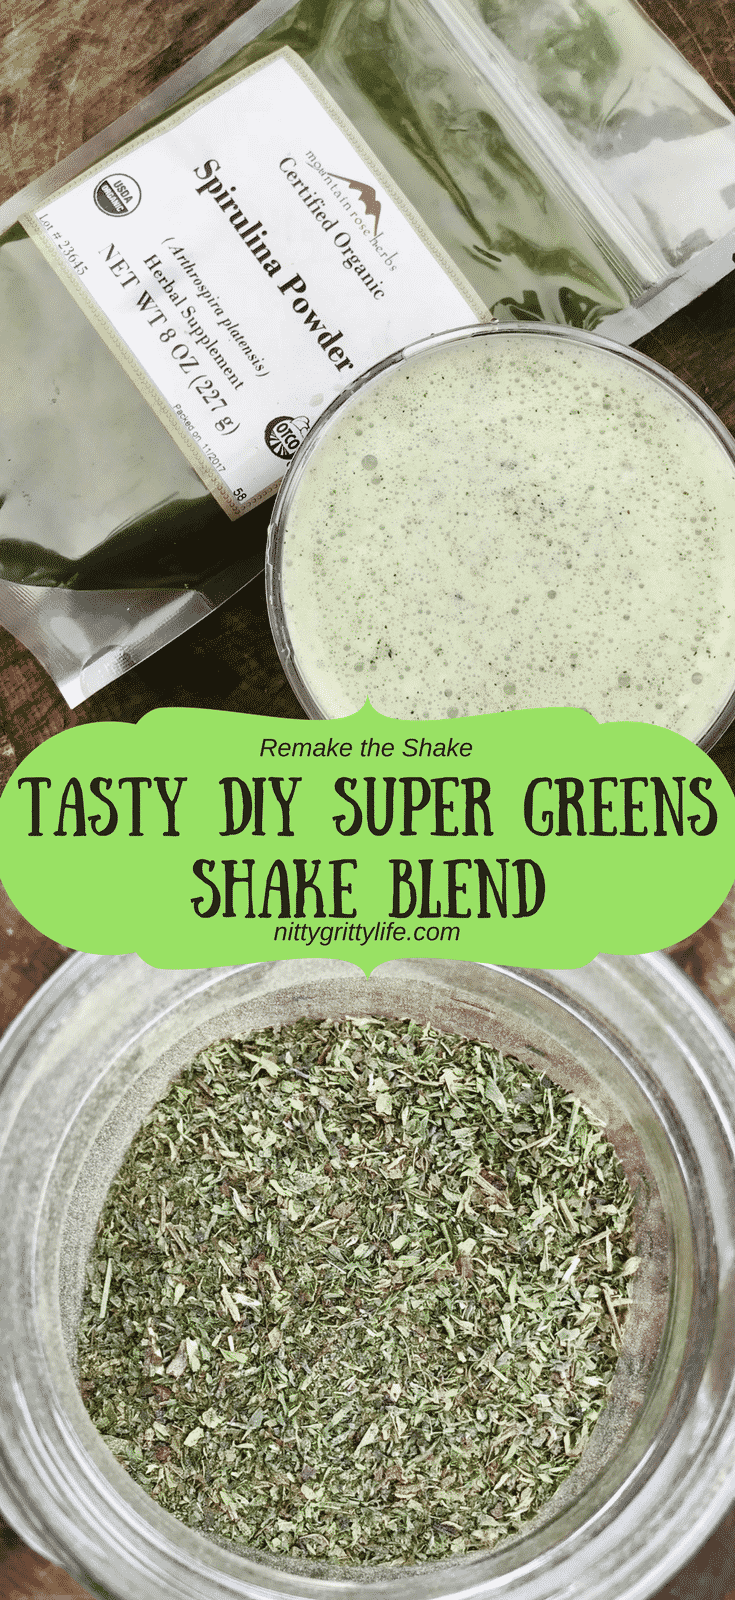 Big nutrition and flavor abound in this tasty DIY super green shake blend